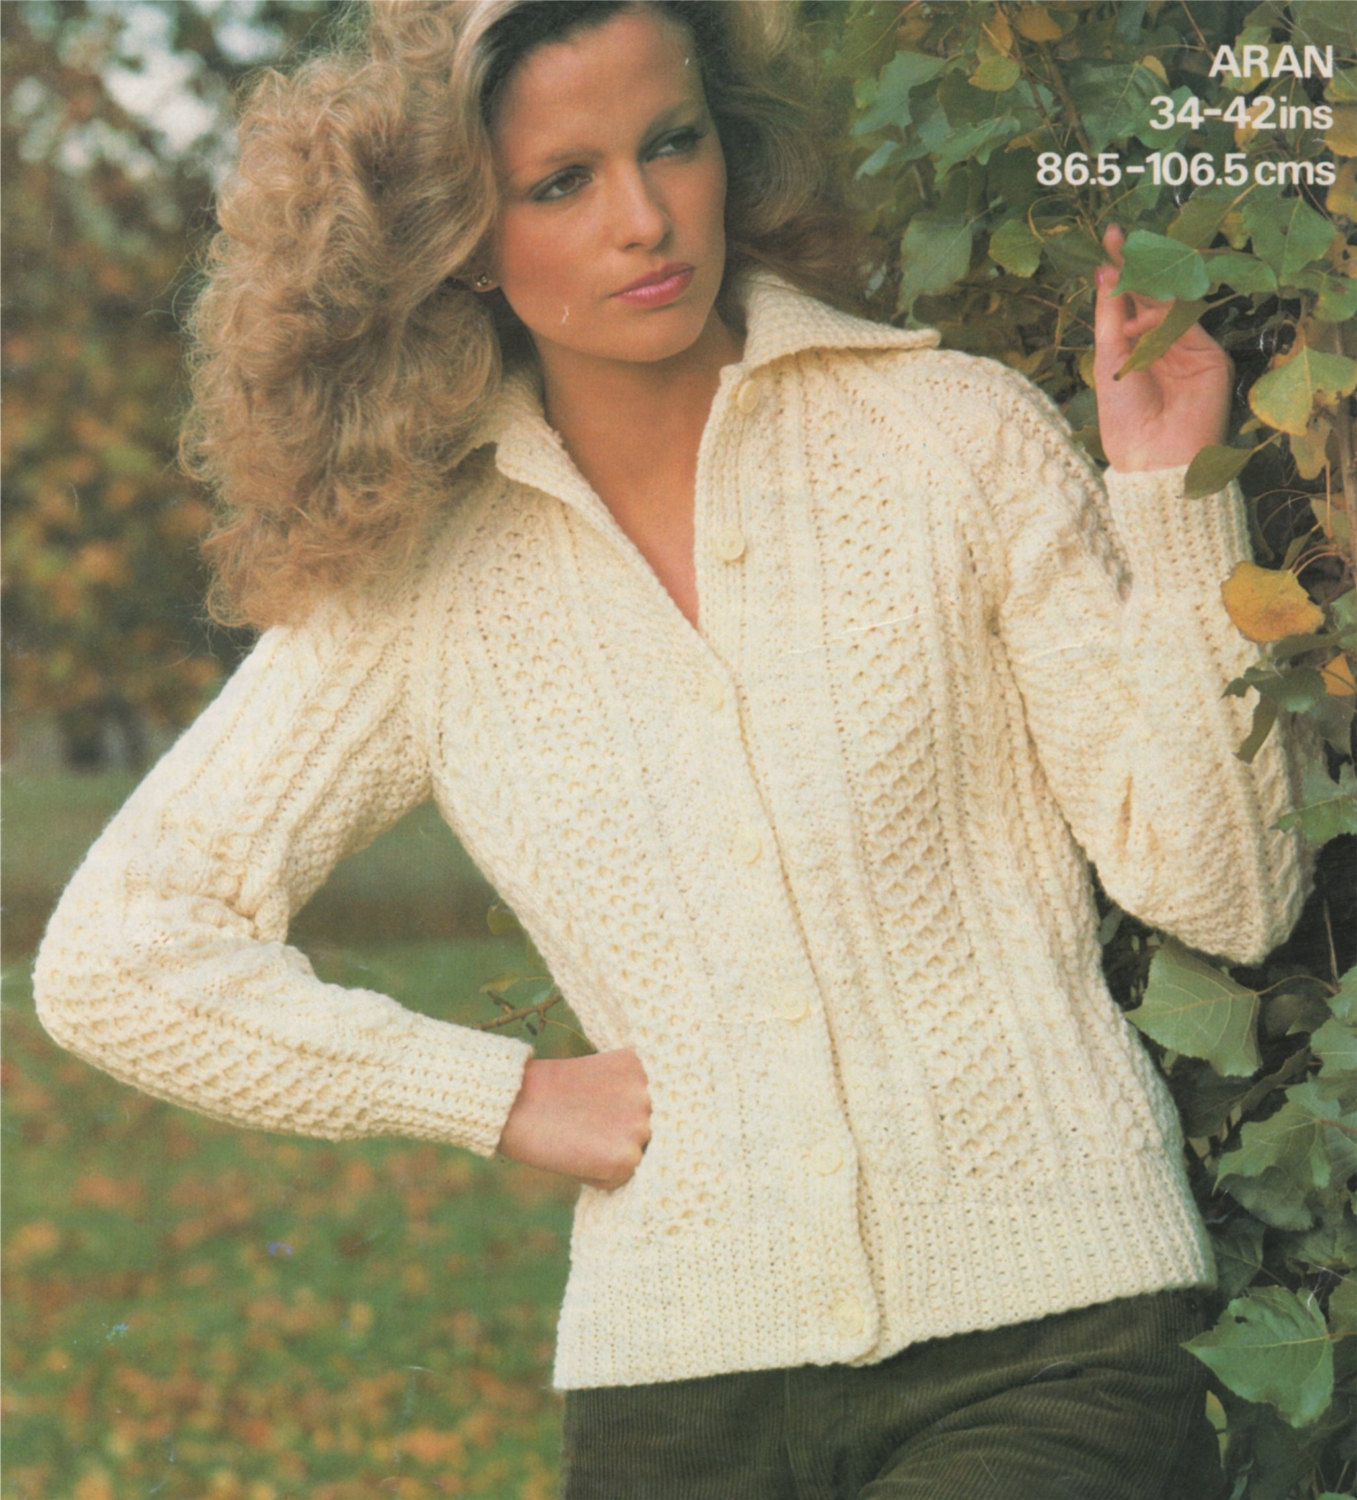 Knitting Patterns For Women Womens Aran Jacket Knitting Pattern Pdf Ladies 34 36 38 40 And 42 Inch Bust Cardigan Vintage Knitting Patterns For Women Download